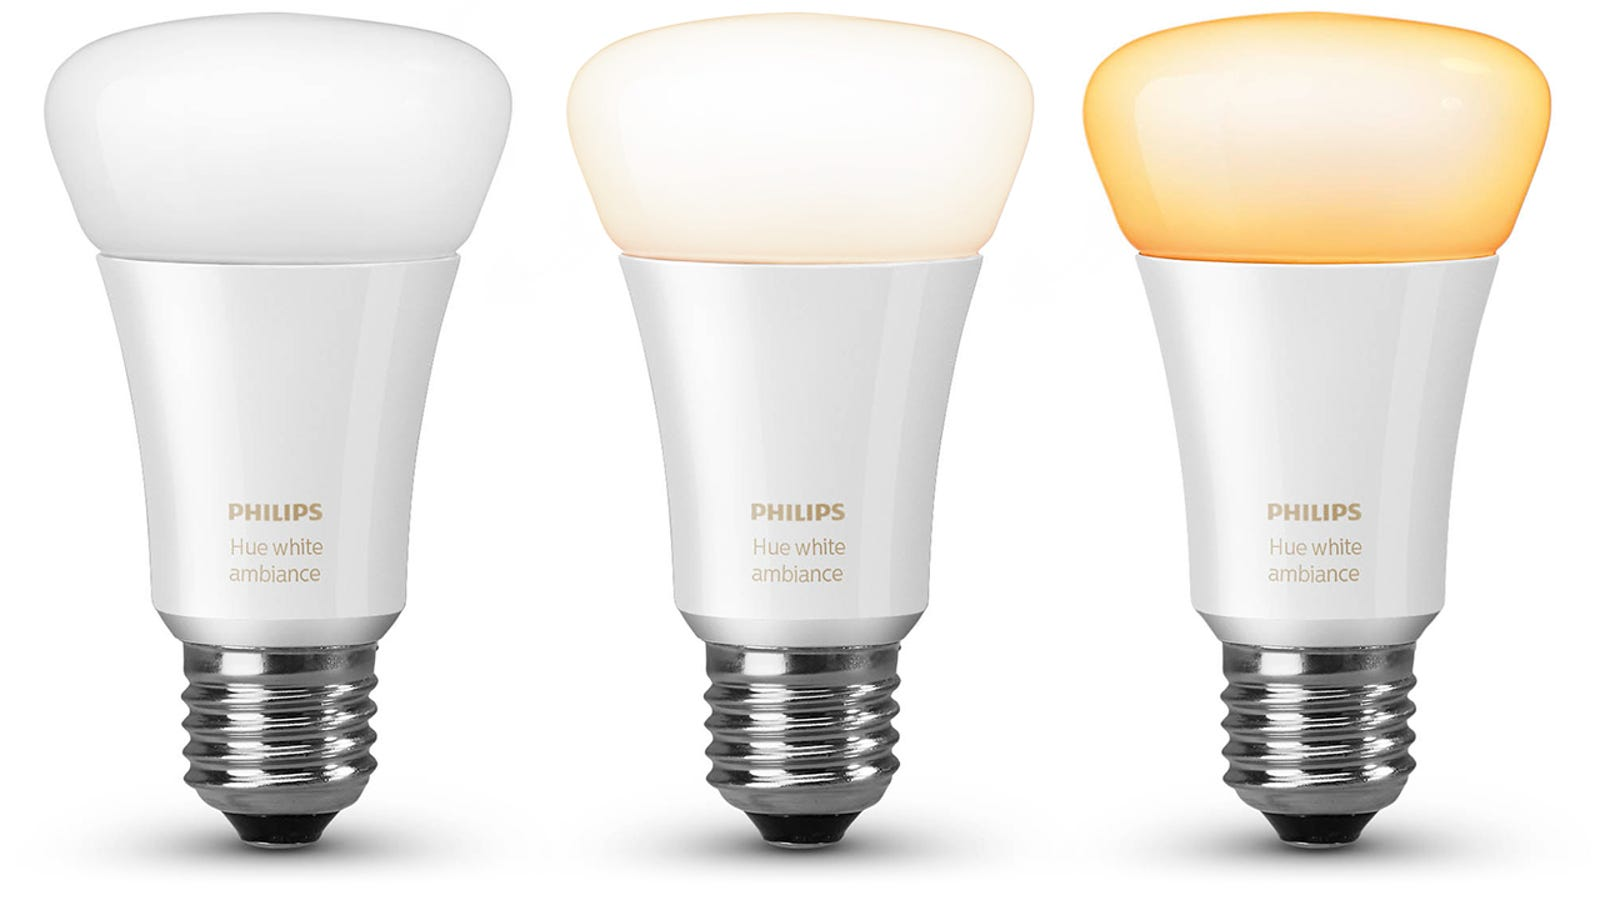 You Can Tweak The Warmth Of Philips New White Hue Bulbs To Help Diagram See Image Comparing A Regular Bulb And Fluorescent Fall Asleep